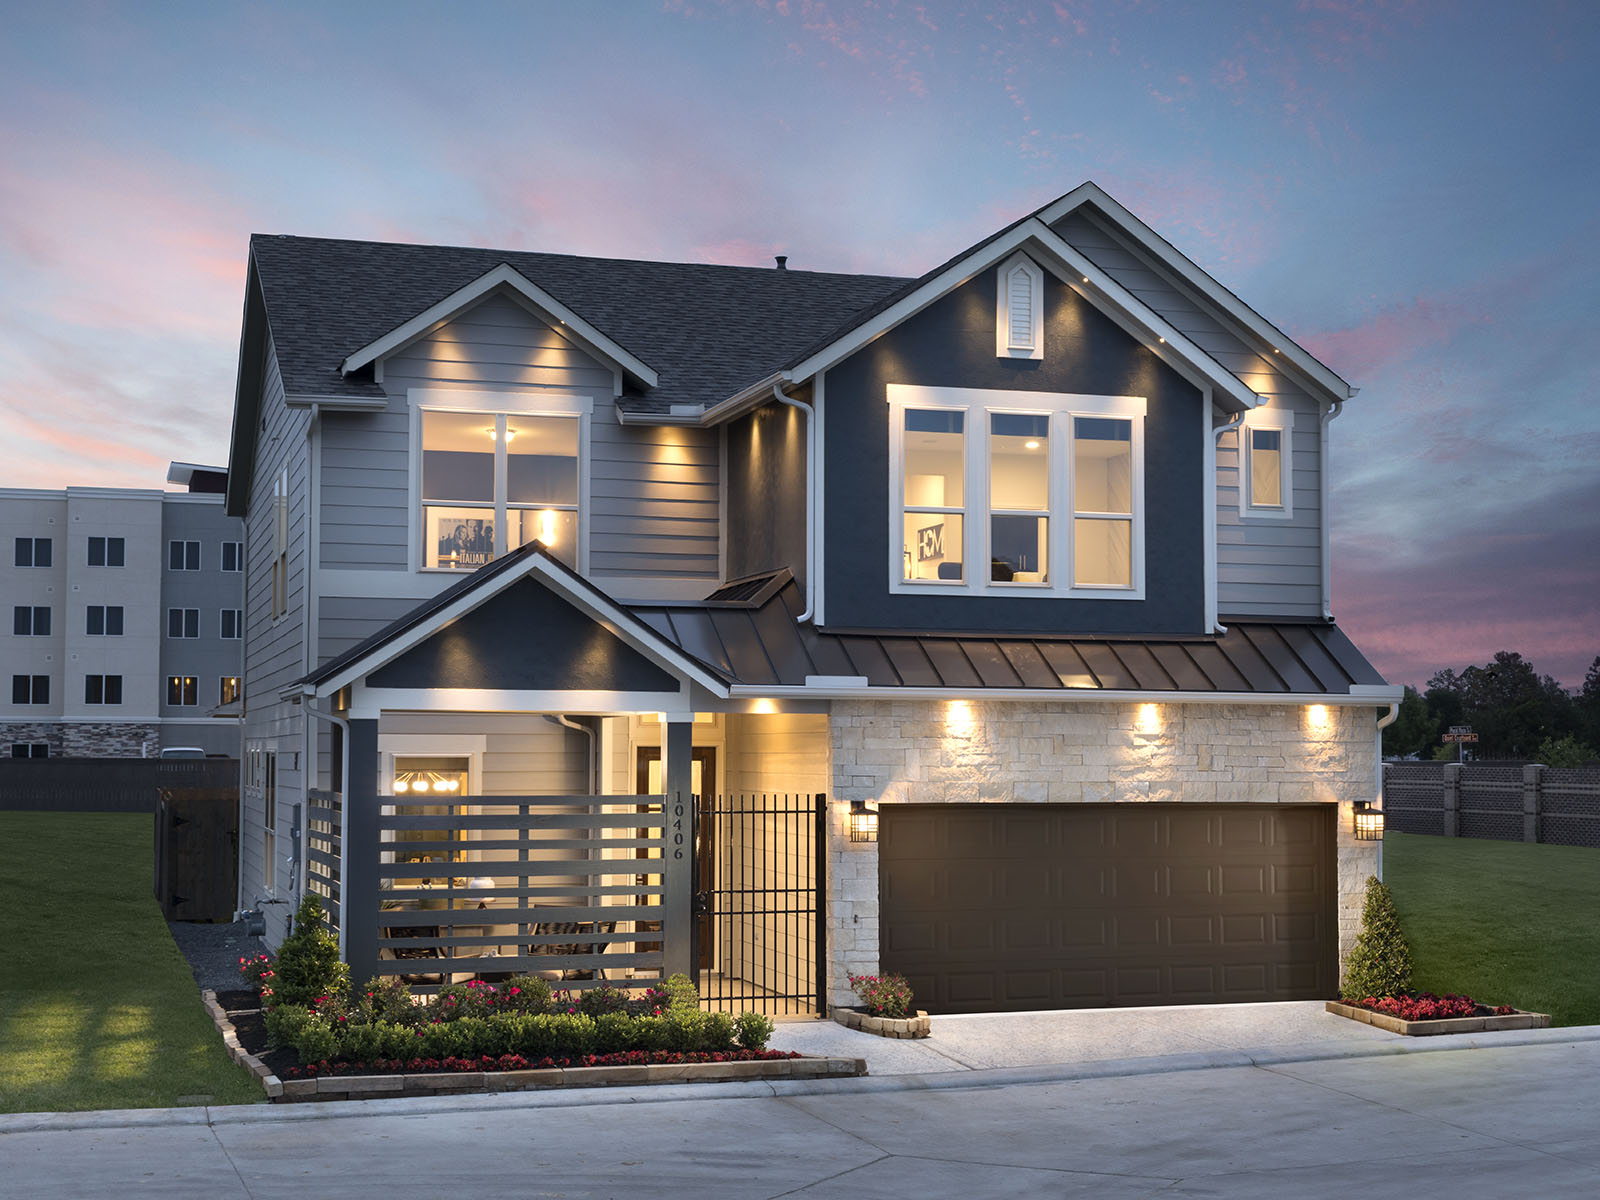 Amazing Shadowdale Terrace By Meritage Homes New Homes For Sale In Home Interior And Landscaping Ferensignezvosmurscom